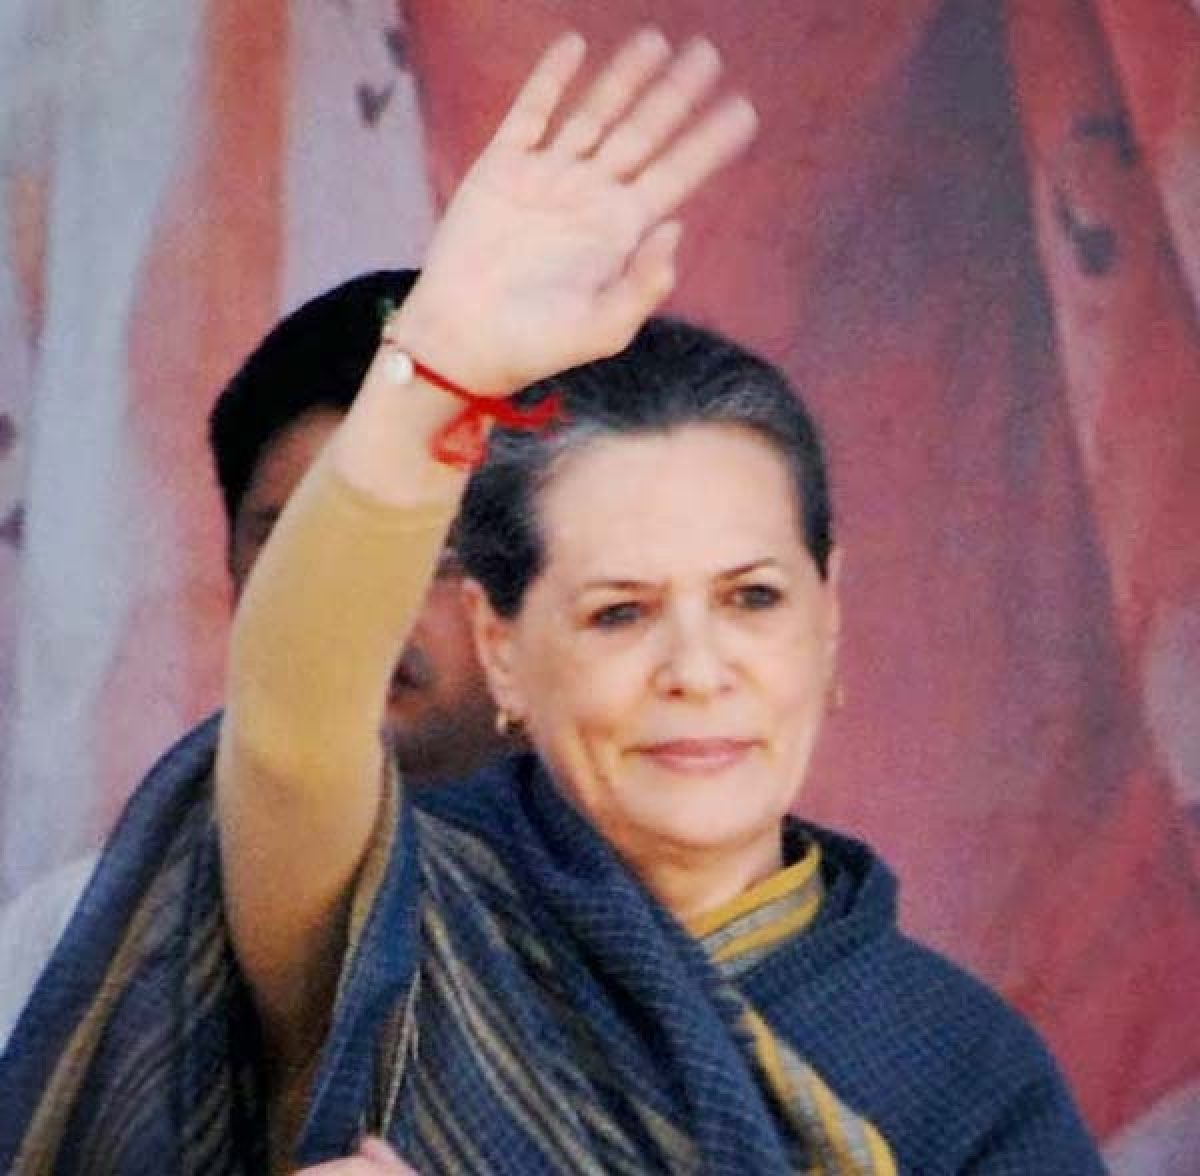 Sonia applies healing touch to demoralised party ranks